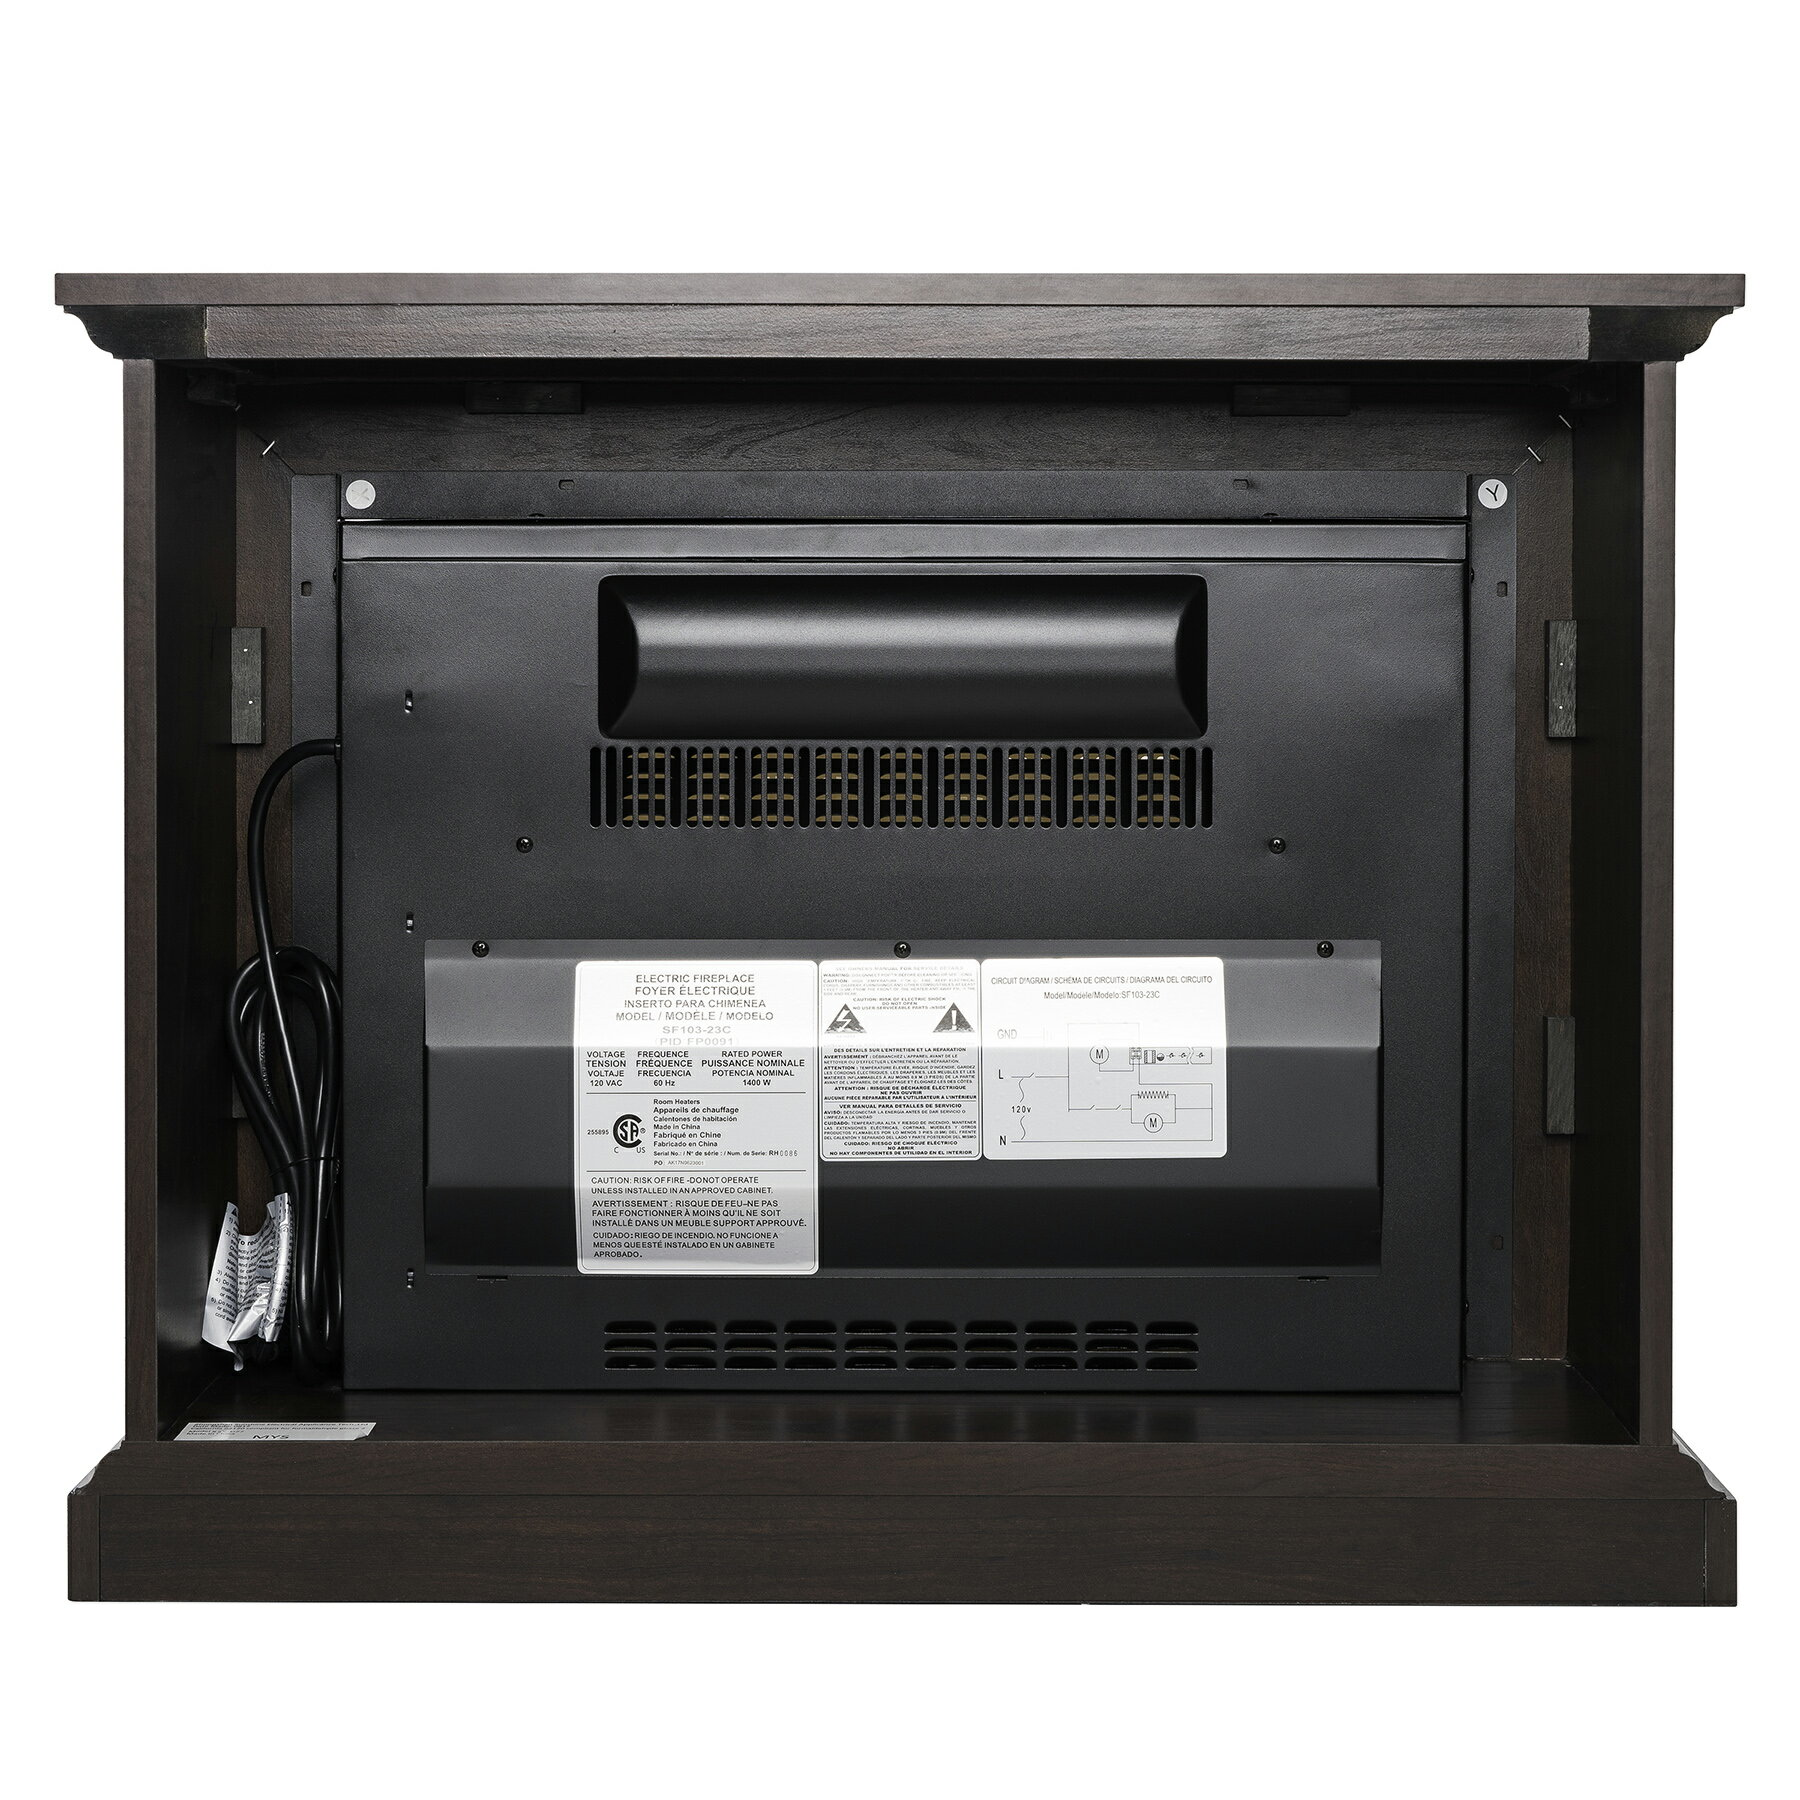 "AKDY 32"" Brown Wooden Mantel Freestanding Electric Fireplace Stove Heater 3"